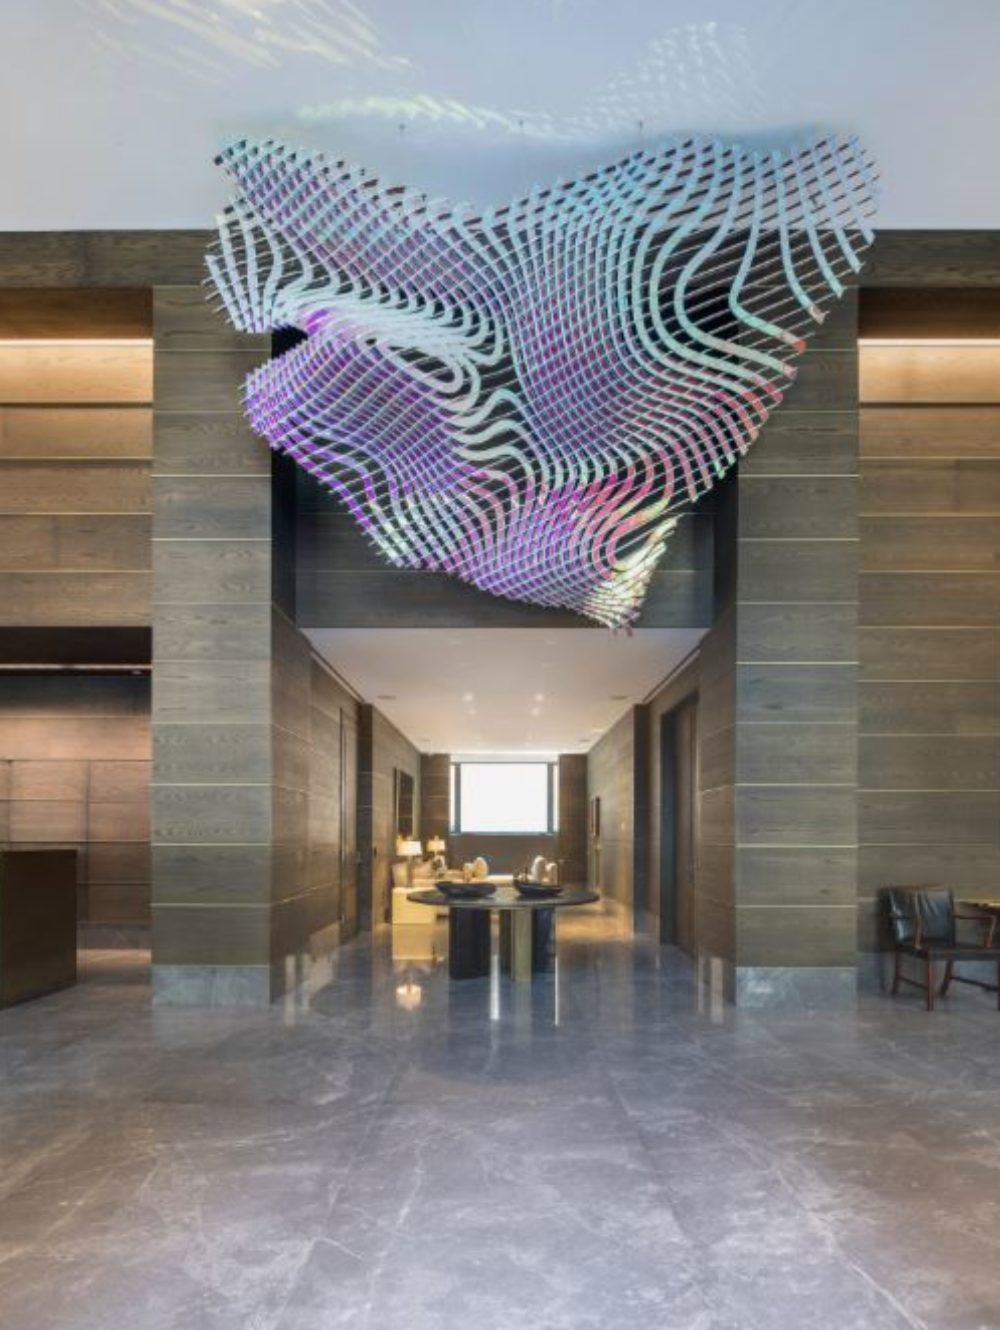 Interior view of 70 Vestry residence lobby in New York City. Has tile flooring, detailed fluorescent sculpture and tile walls.